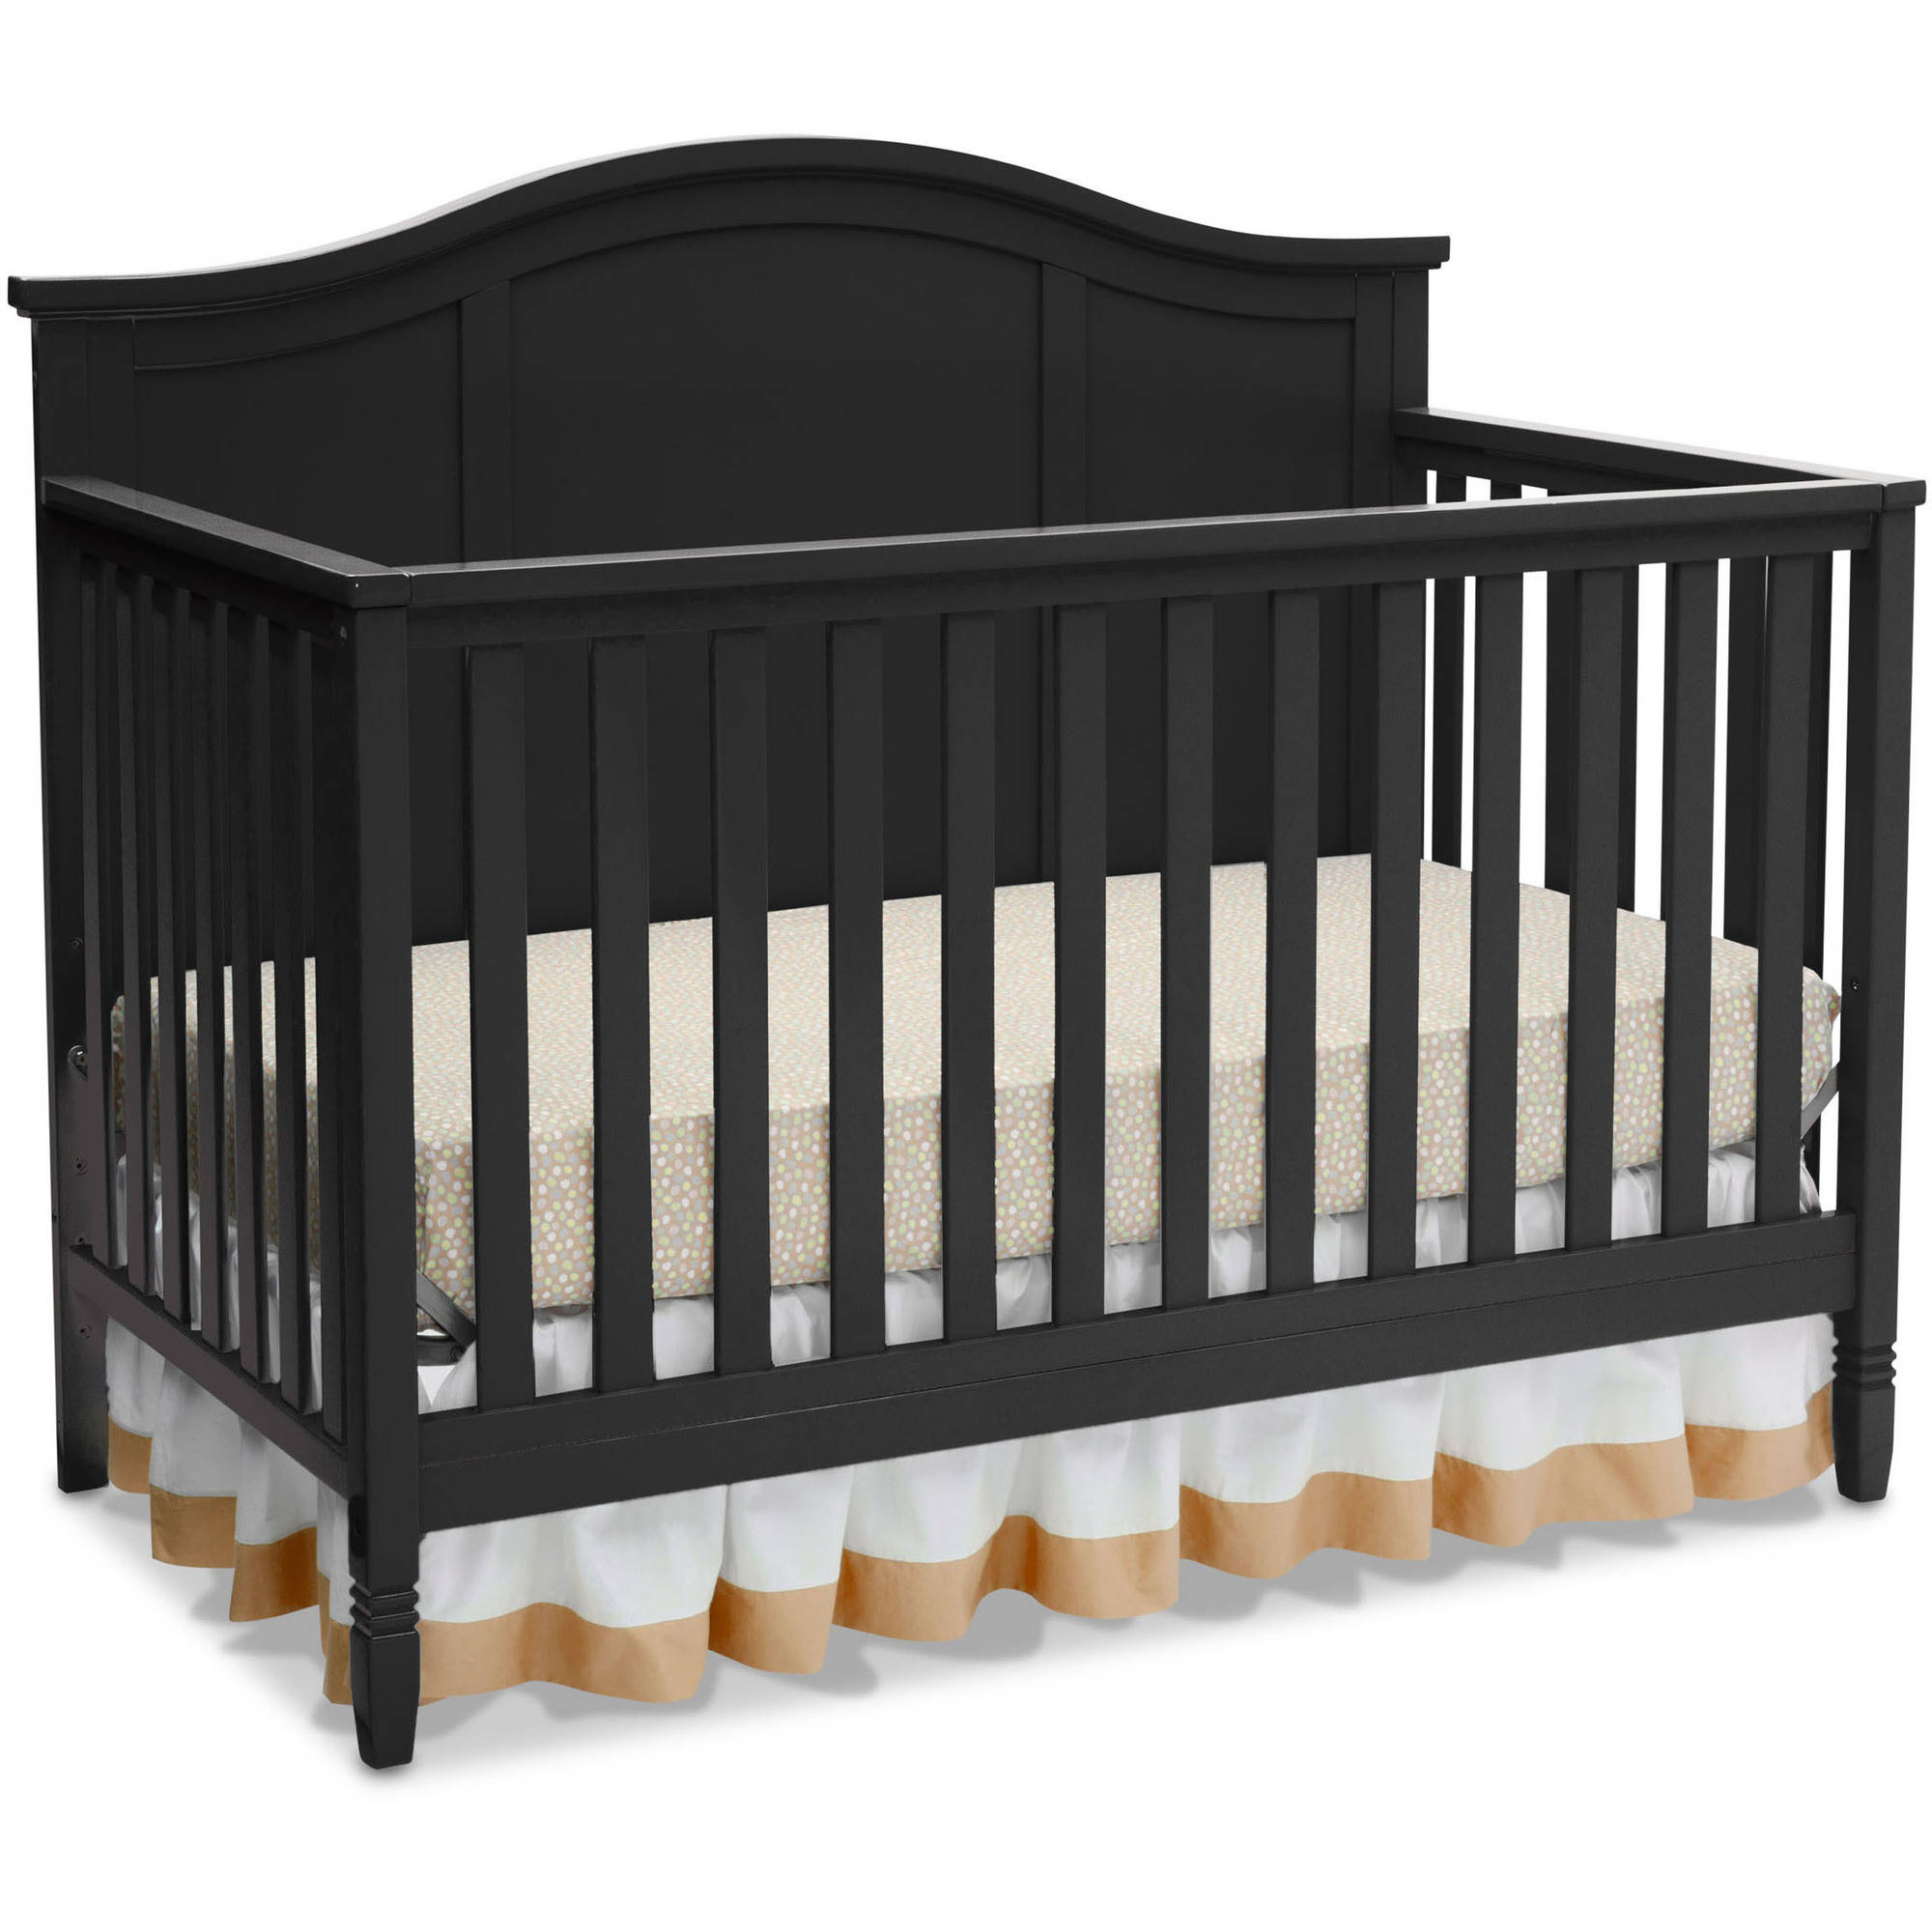 delta children madrid 4-in-1 convertible crib, white - walmart